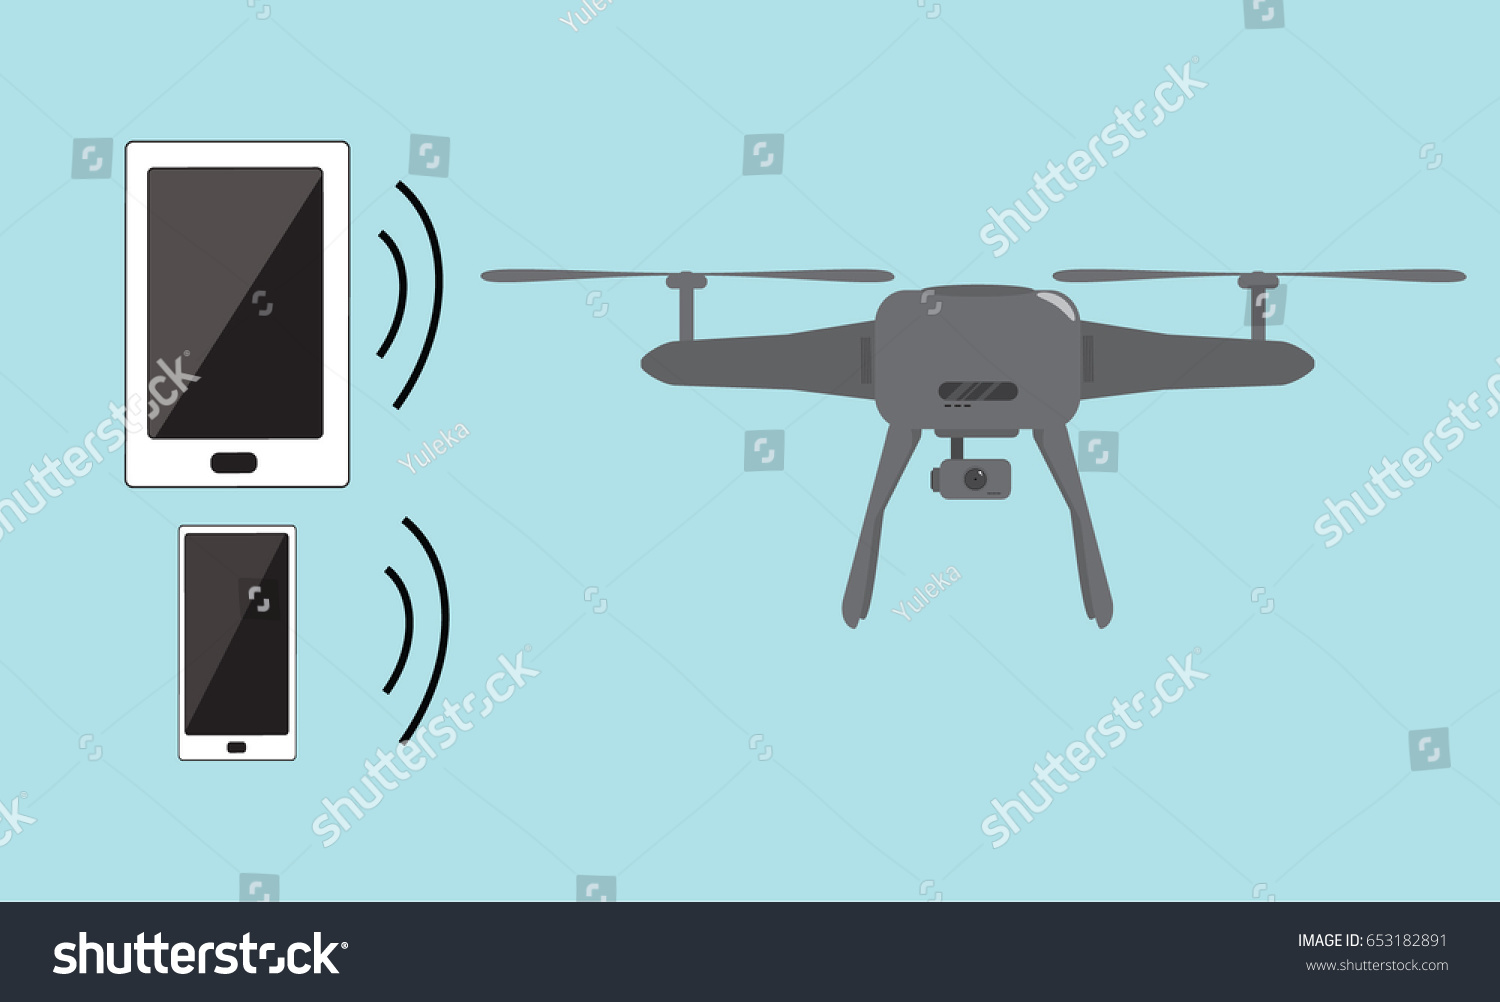 Iot Smart House Air Drone Smart Stock Vector (Royalty Free